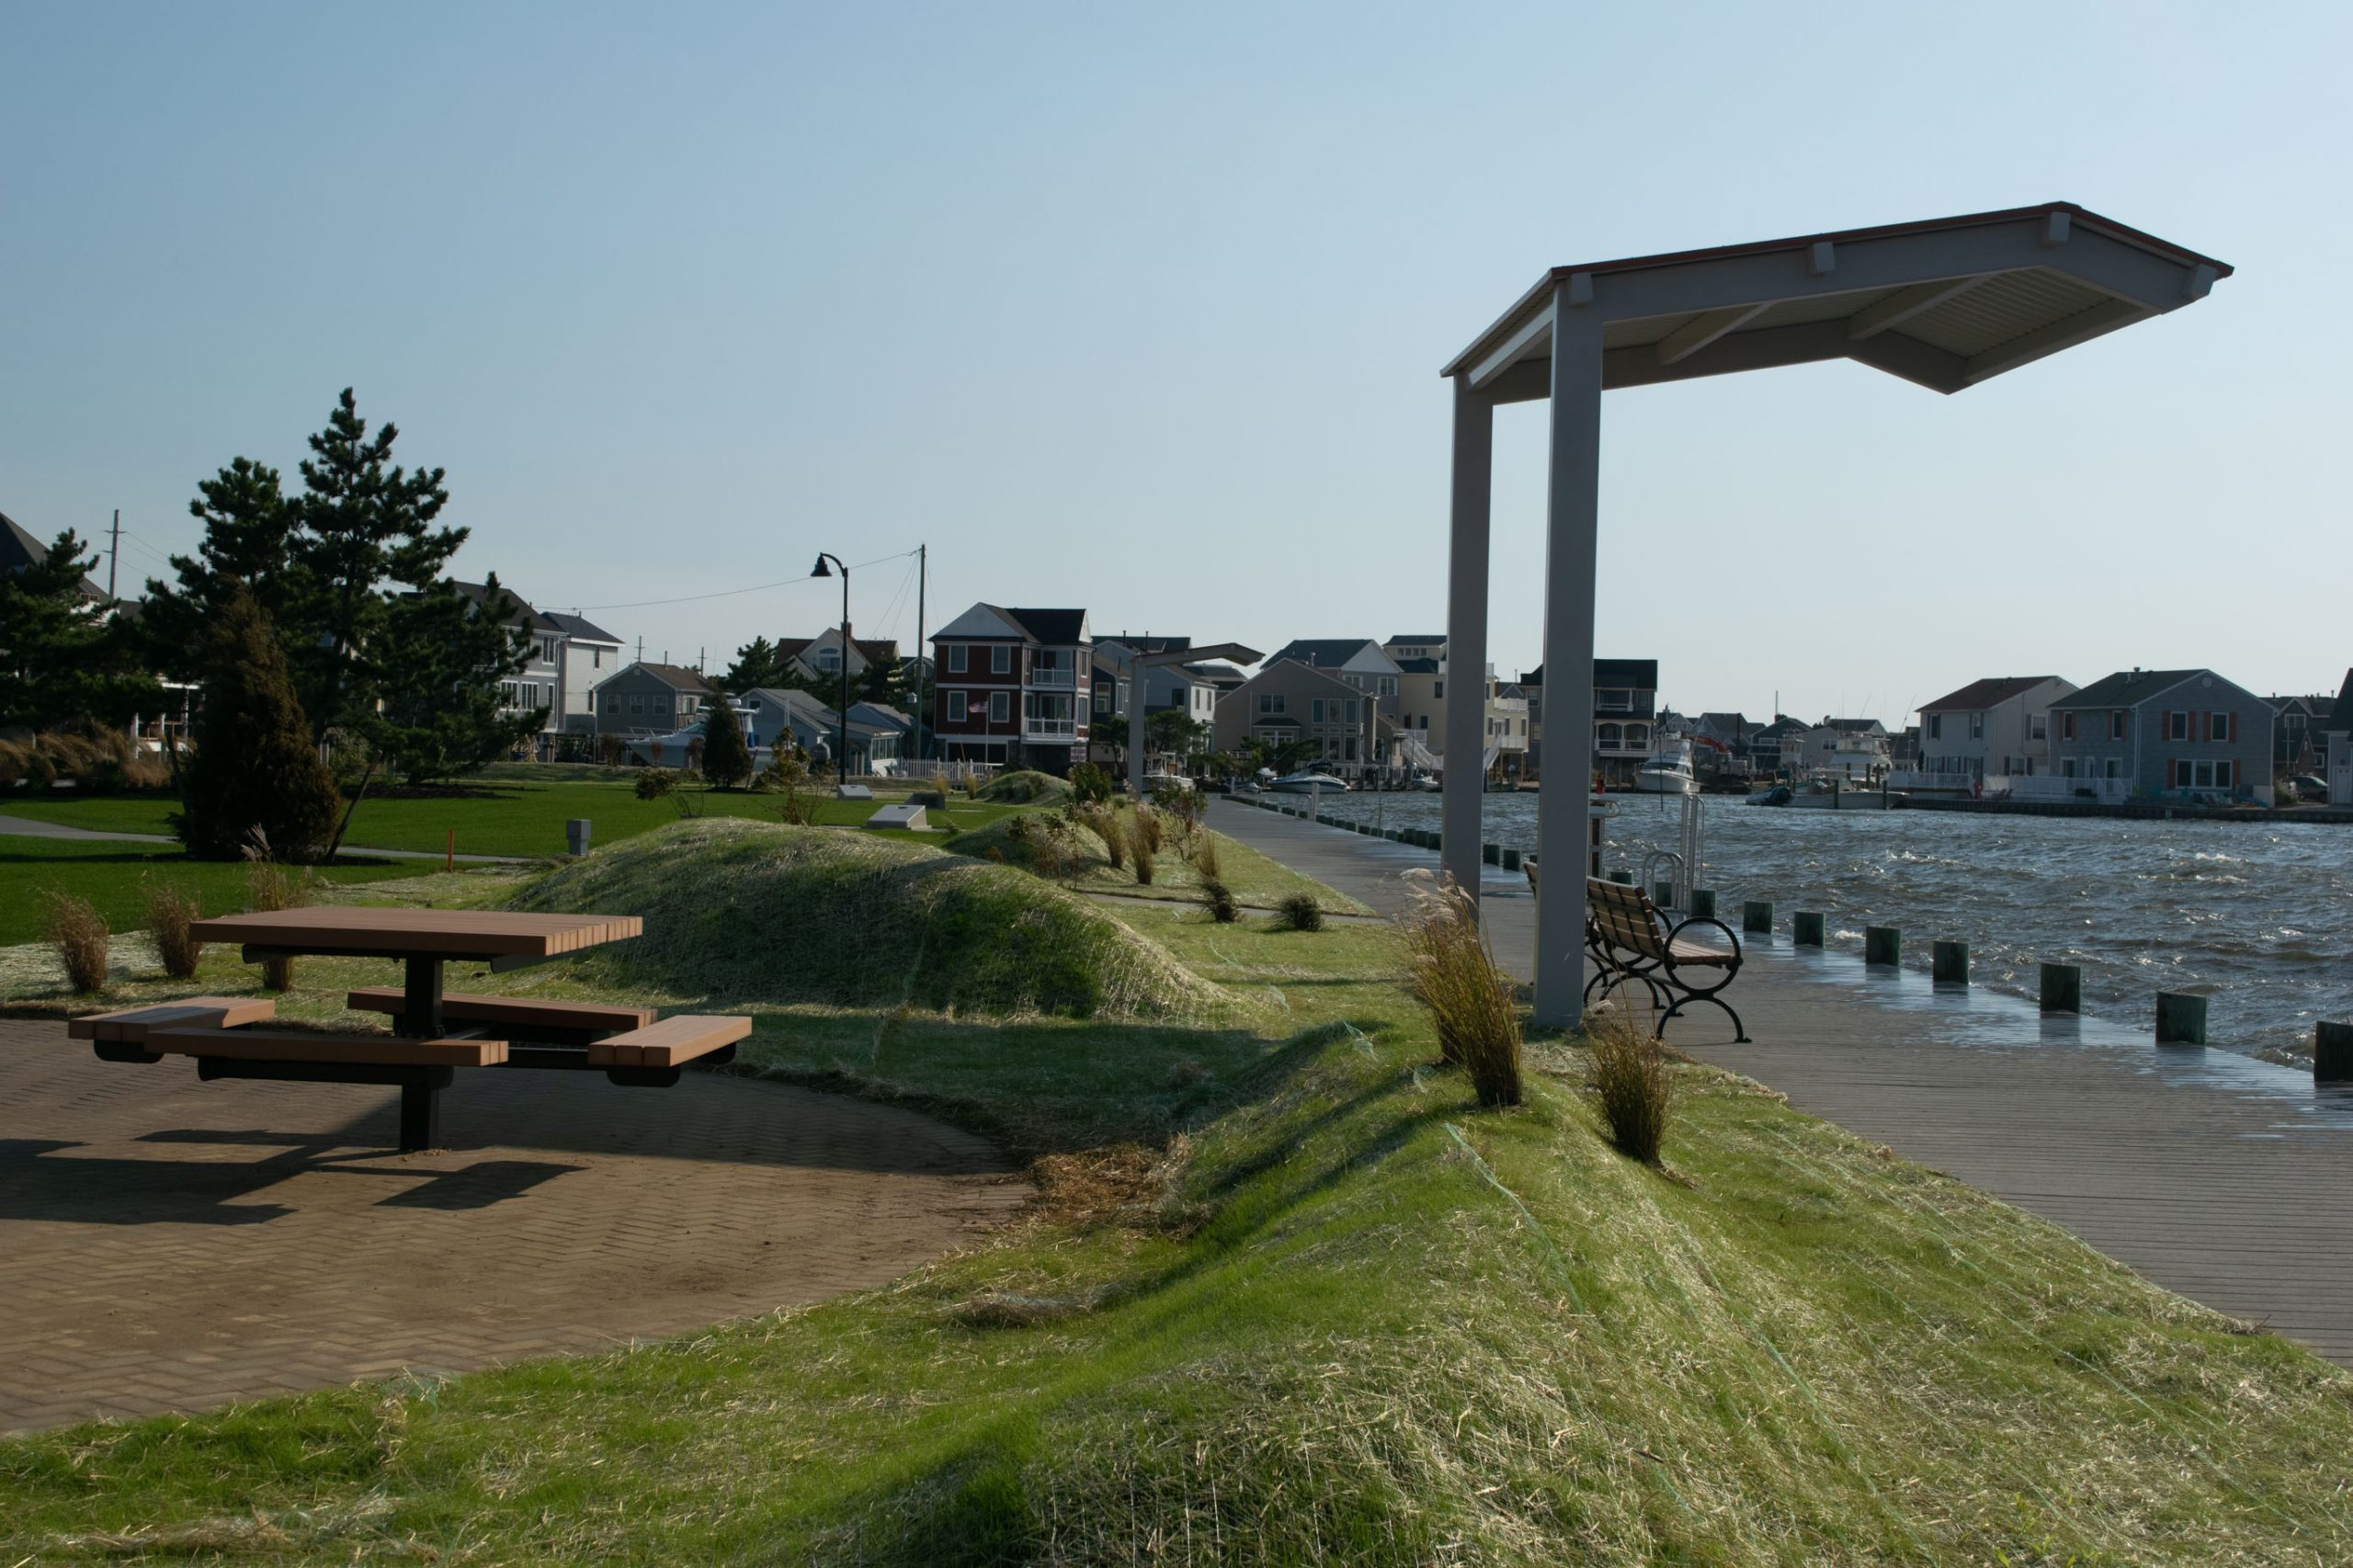 Bayside Park, a day after it reopened, Oct. 7, 2020. (Photo: Daniel Nee)